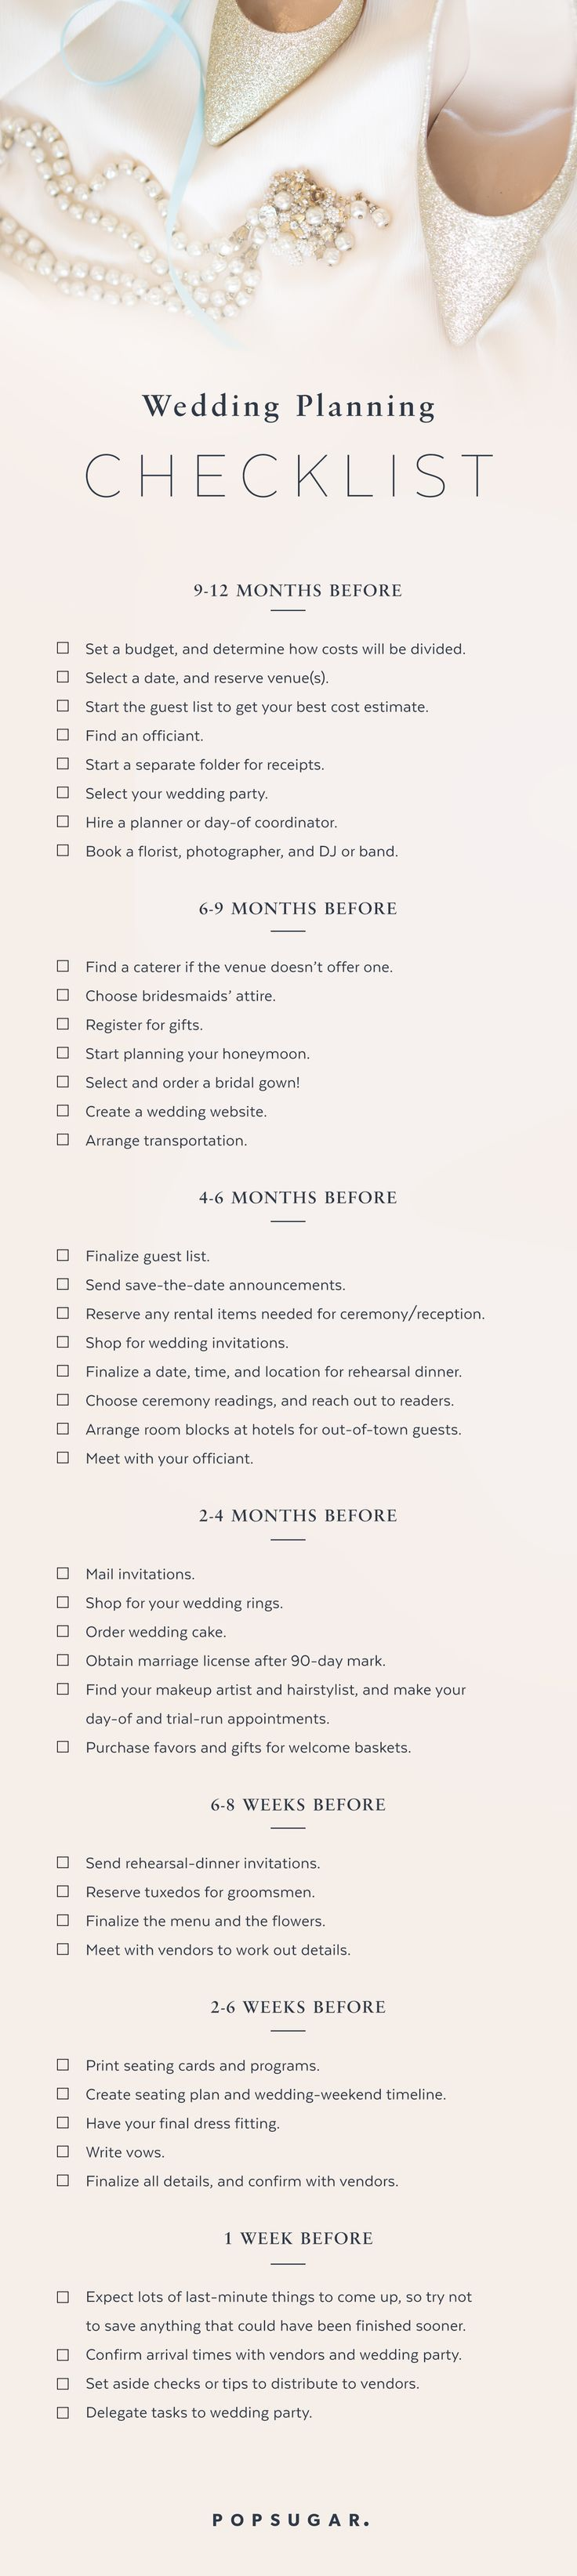 It's overwhelming when you're not sure what's next on the to-do list, so I've created a general timeline for brides out there who need the reminders or reassurance that they're already on track.